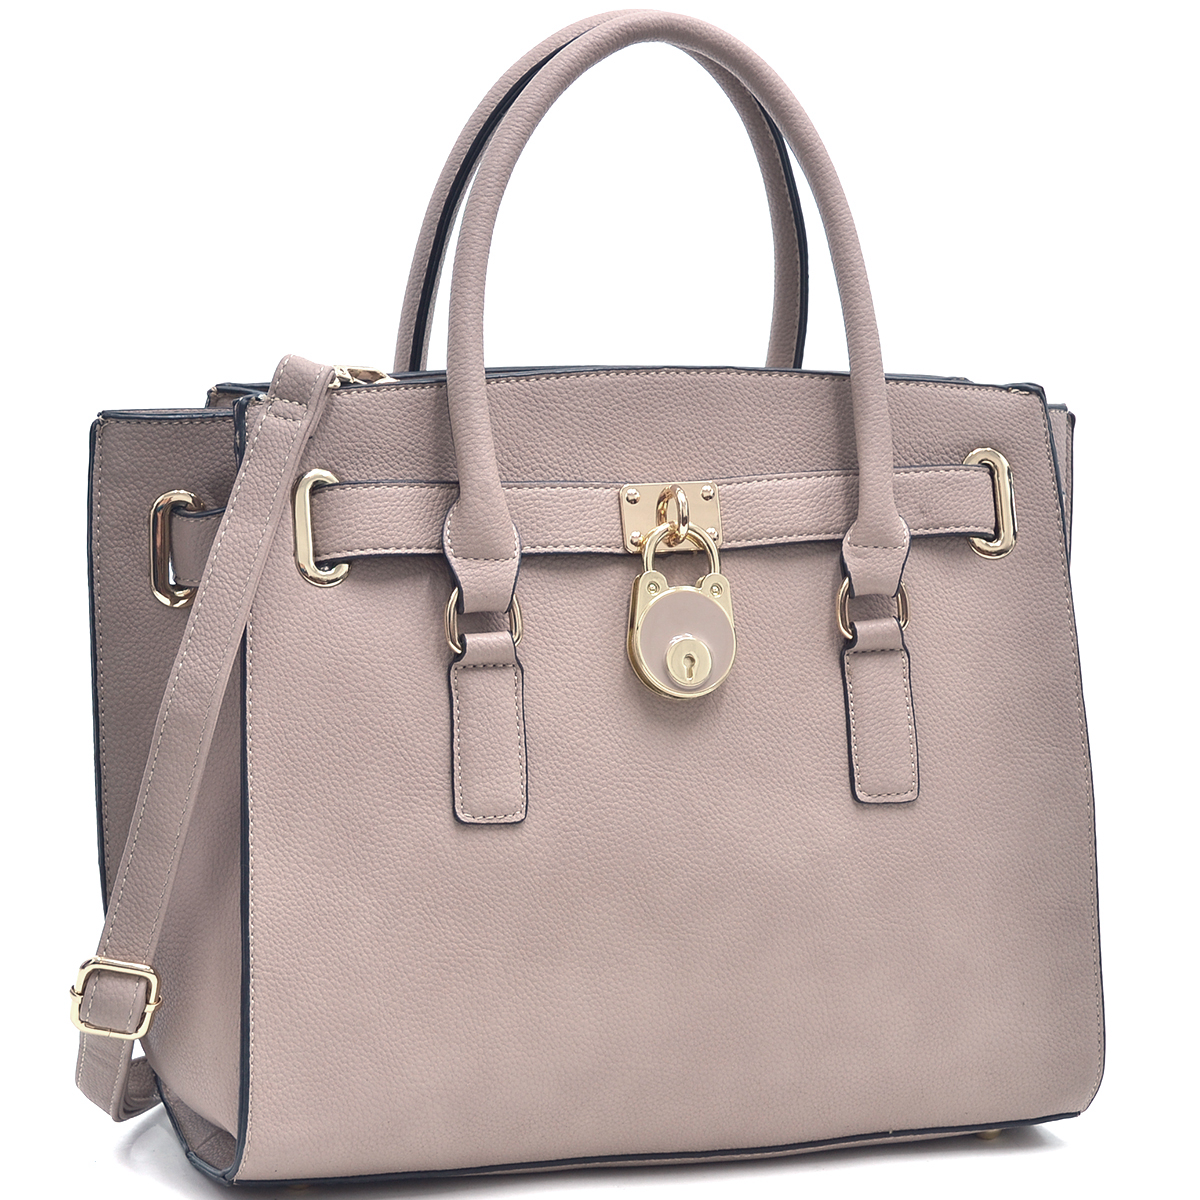 Dasein® Saffiano Leather Belted Medium Tote Bag